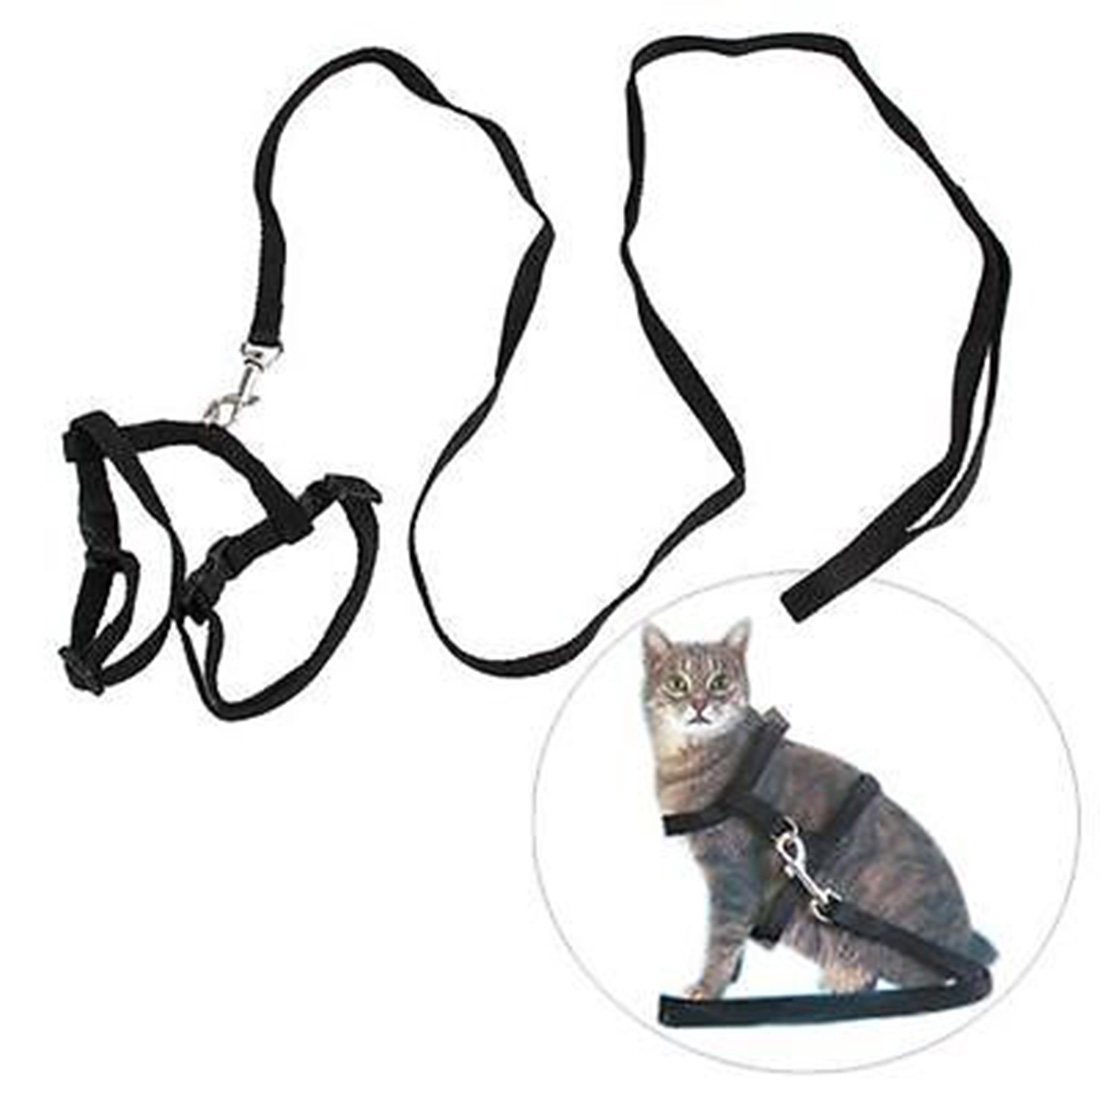 Aliexpress Buy Cat Harness And Leash Nylon Products